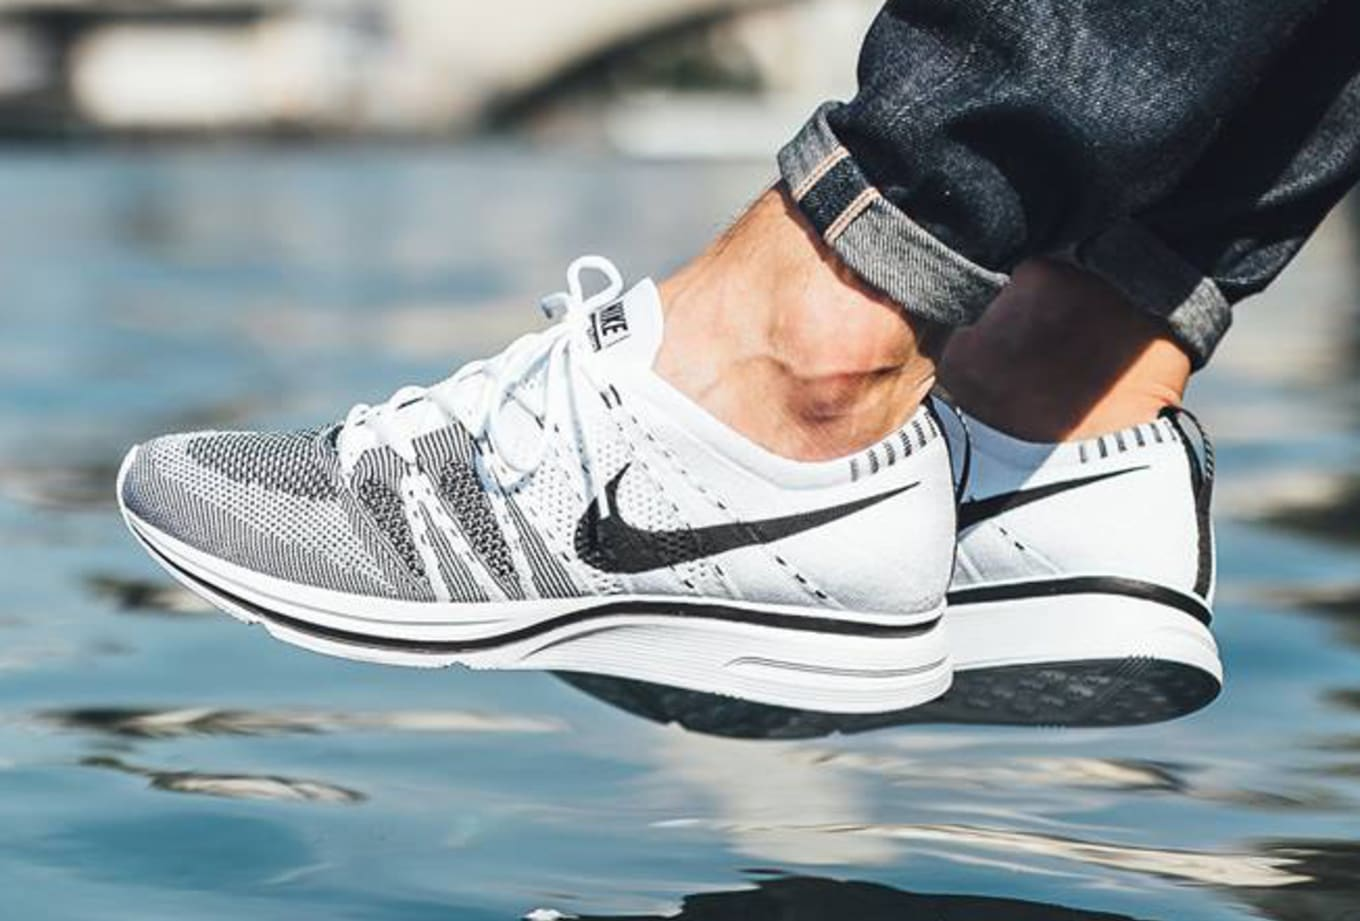 d8eb7f4f1f6 Nike Flyknit Trainers Return Next Week. See the white black pair on-feet  here.